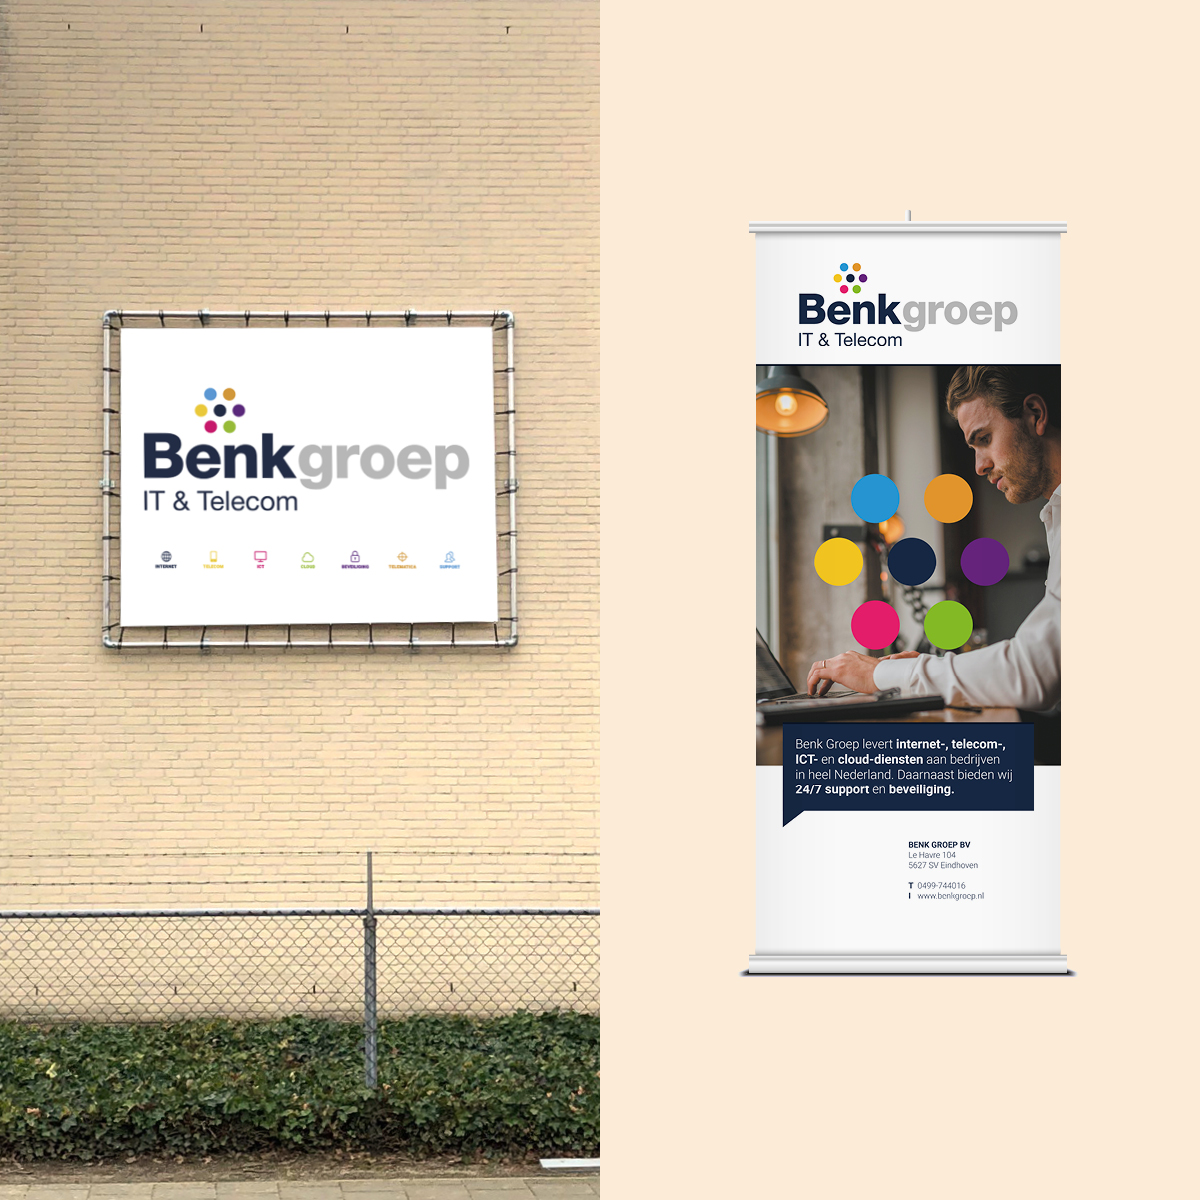 Spandoek en roll-up banner Benk Groep - creative digital agency Puntkomma Nijmegen